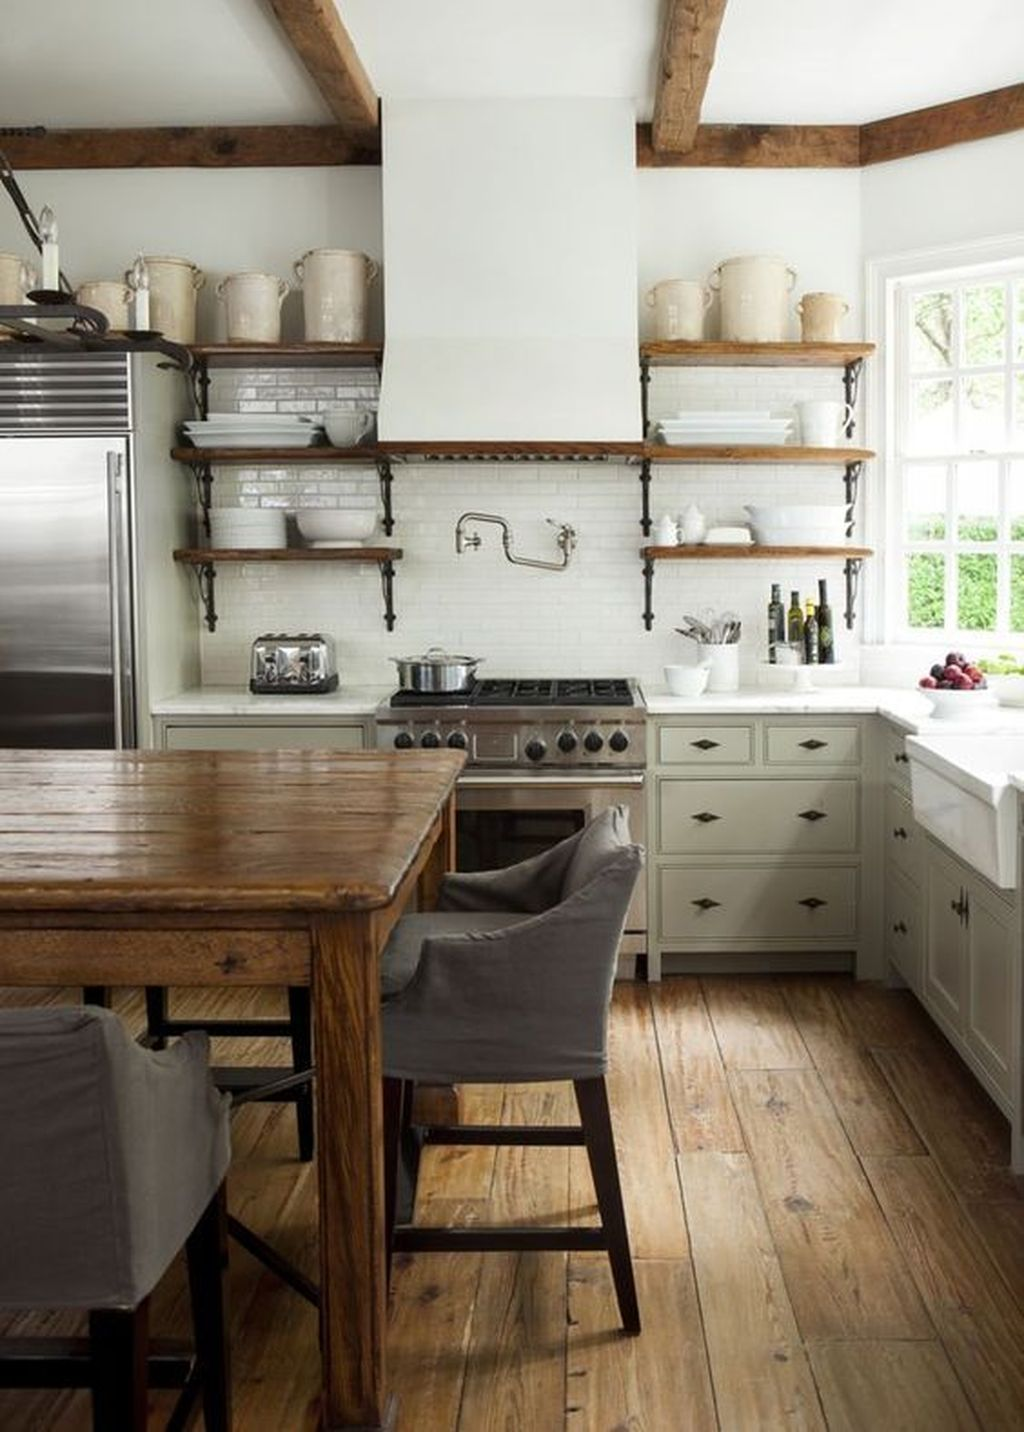 40 Scandinavian Farmhouse Design Ideas The Idea Was Supposed To Make It Resemble A Europe Farmhouse Kitchen Inspiration Kitchen Inspirations Kitchen Remodel